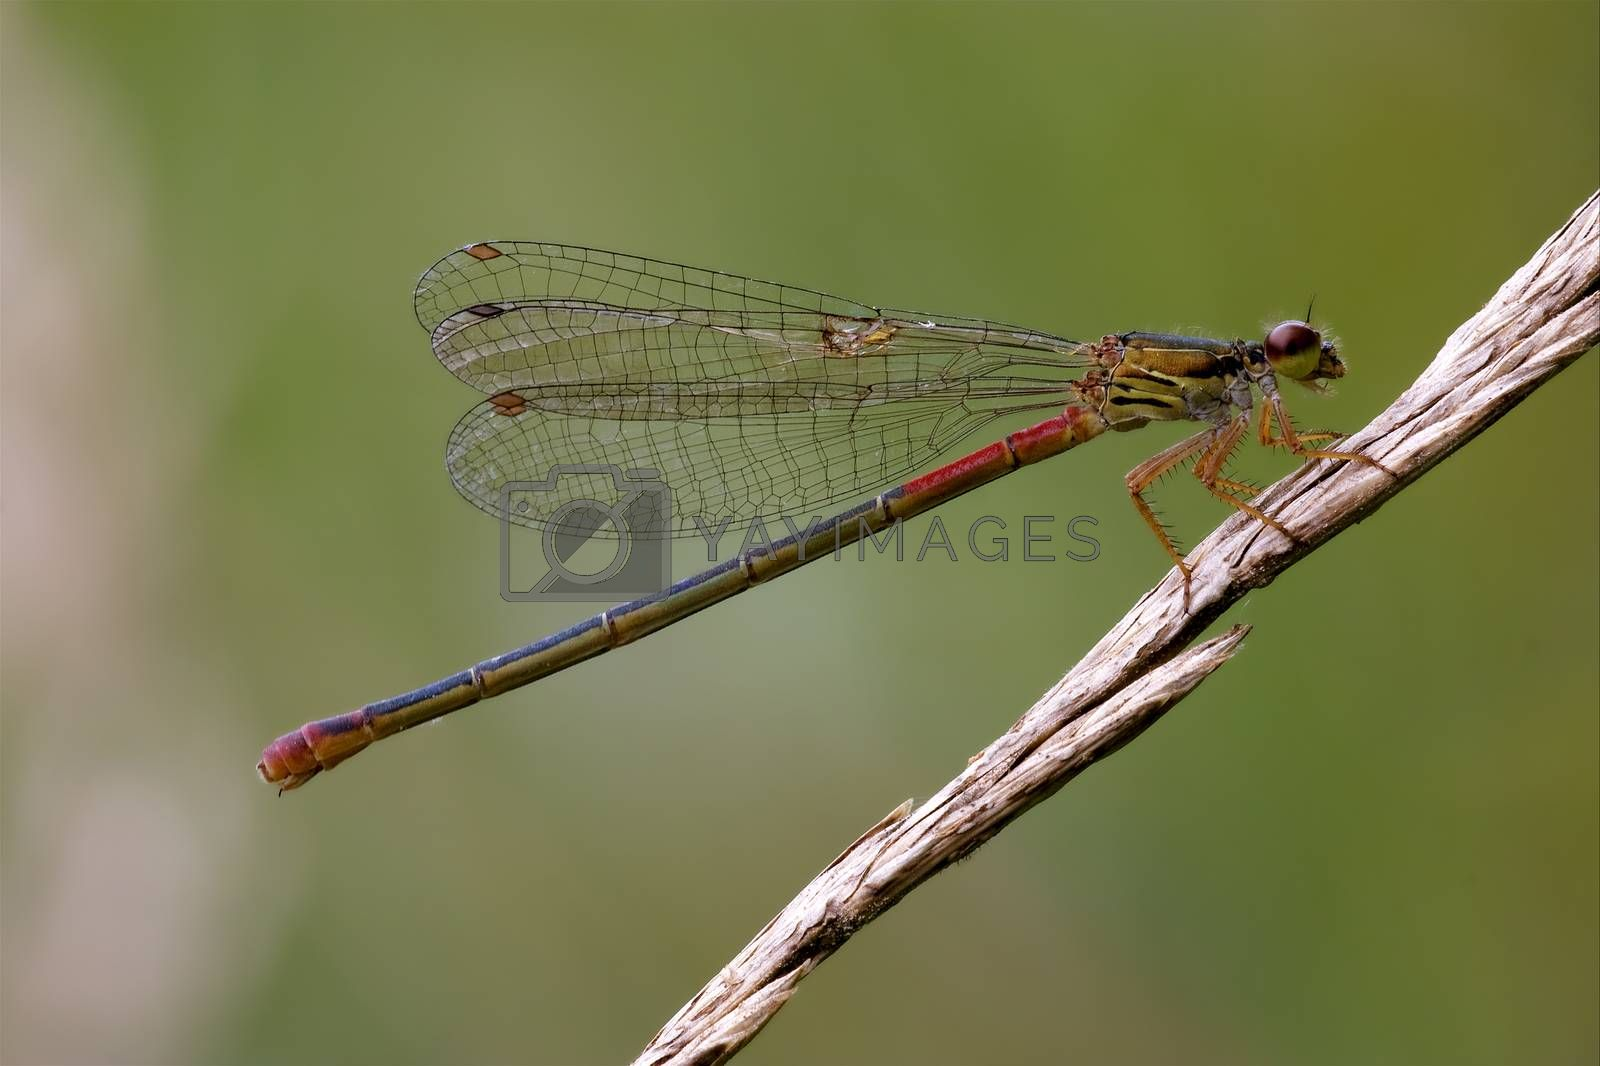 Royalty free image of  red black dragonfly coenagrion puella  by lkpro